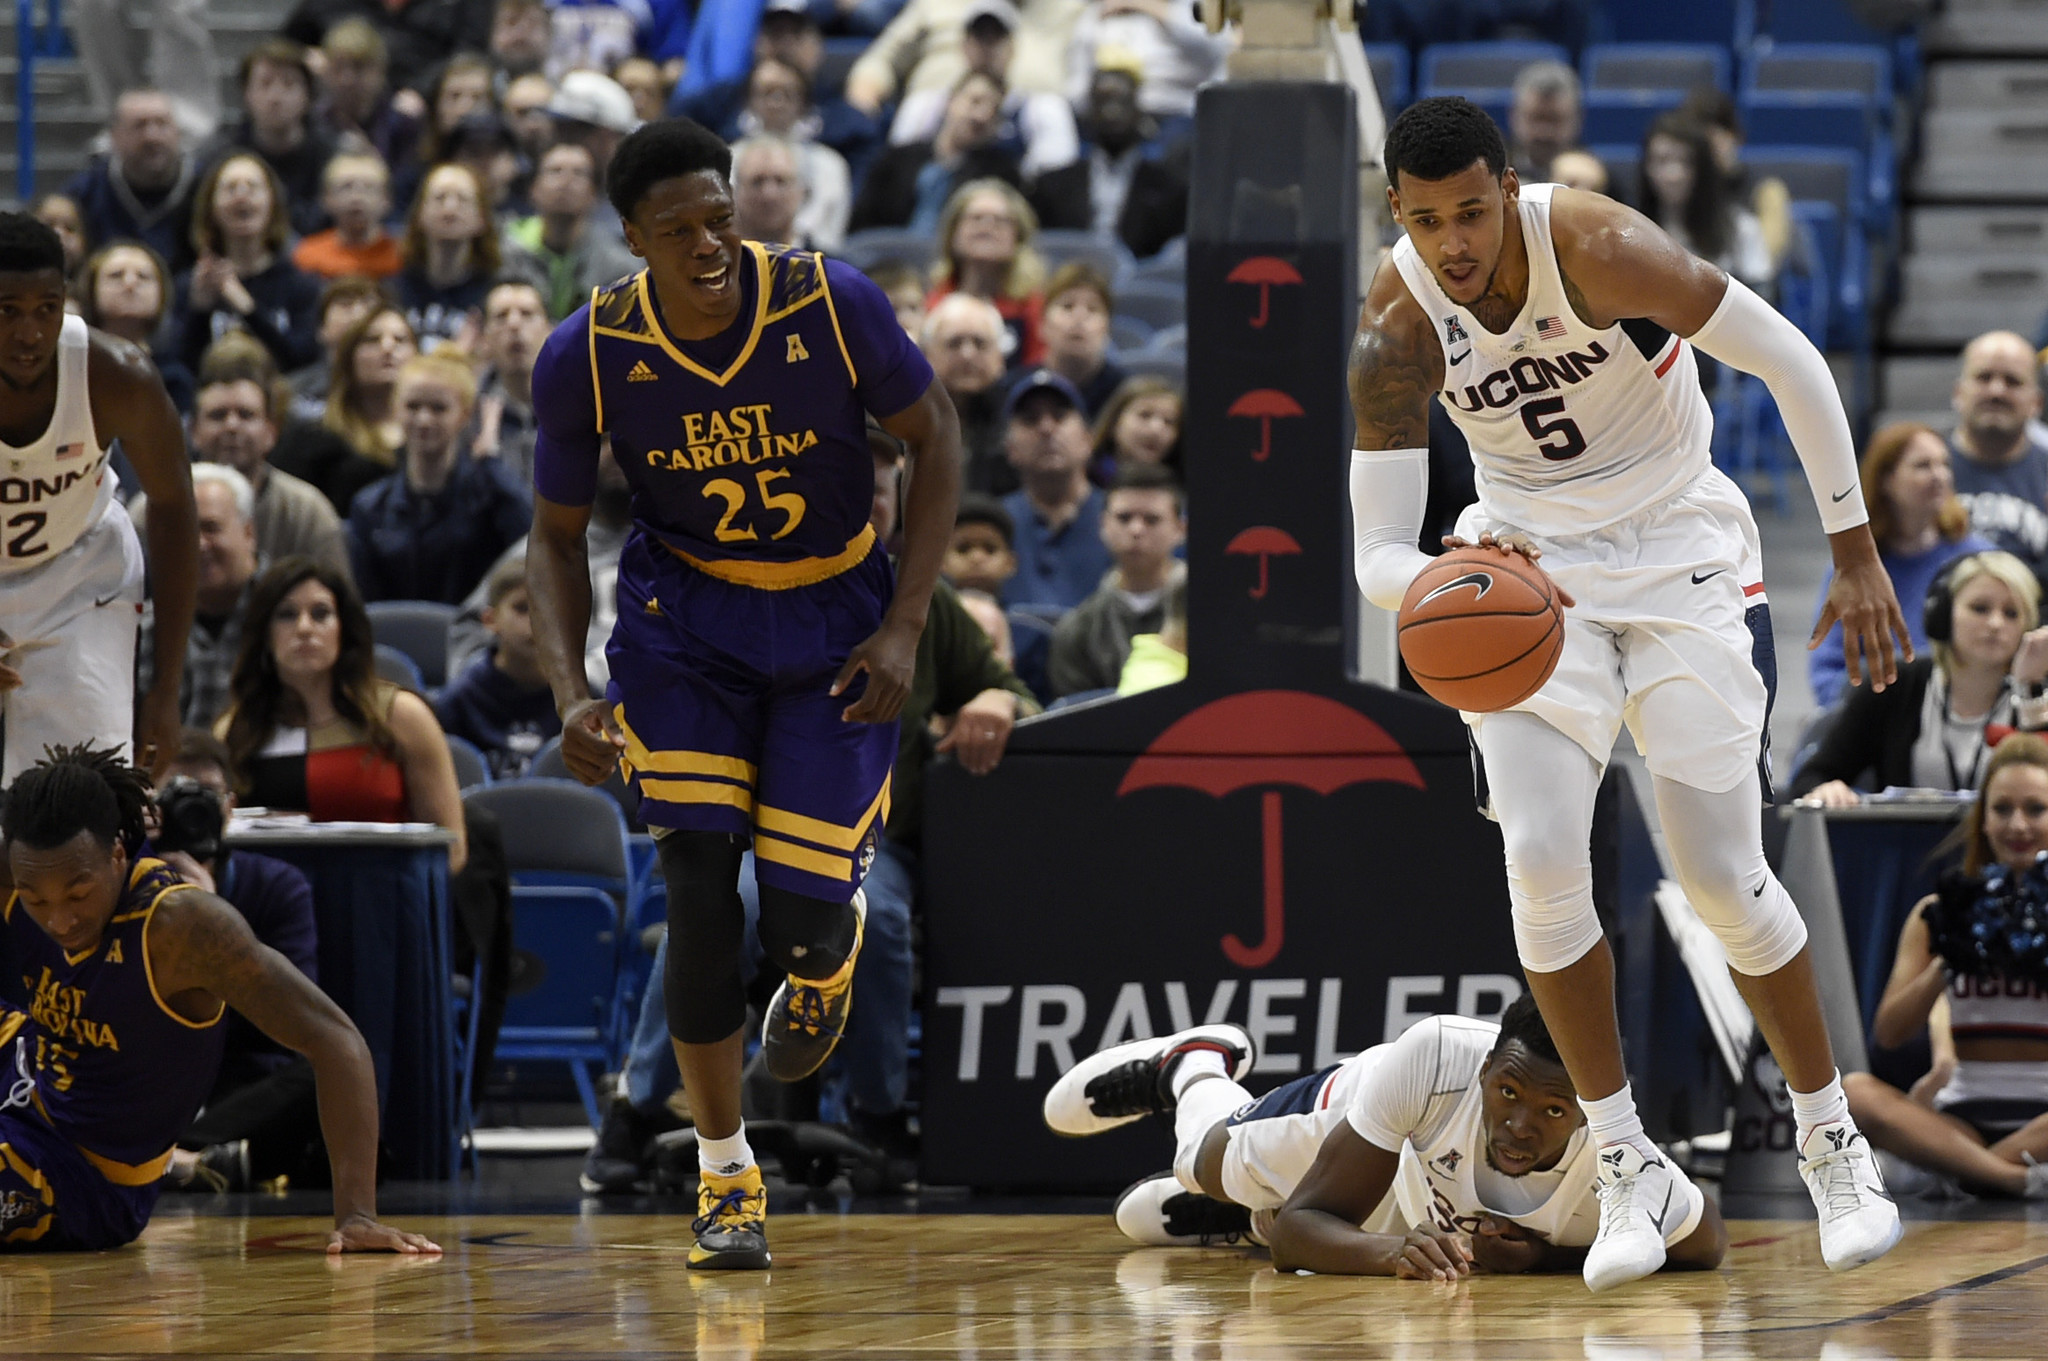 Hc-uconn-men-notebook-east-carolina-0123-20170122